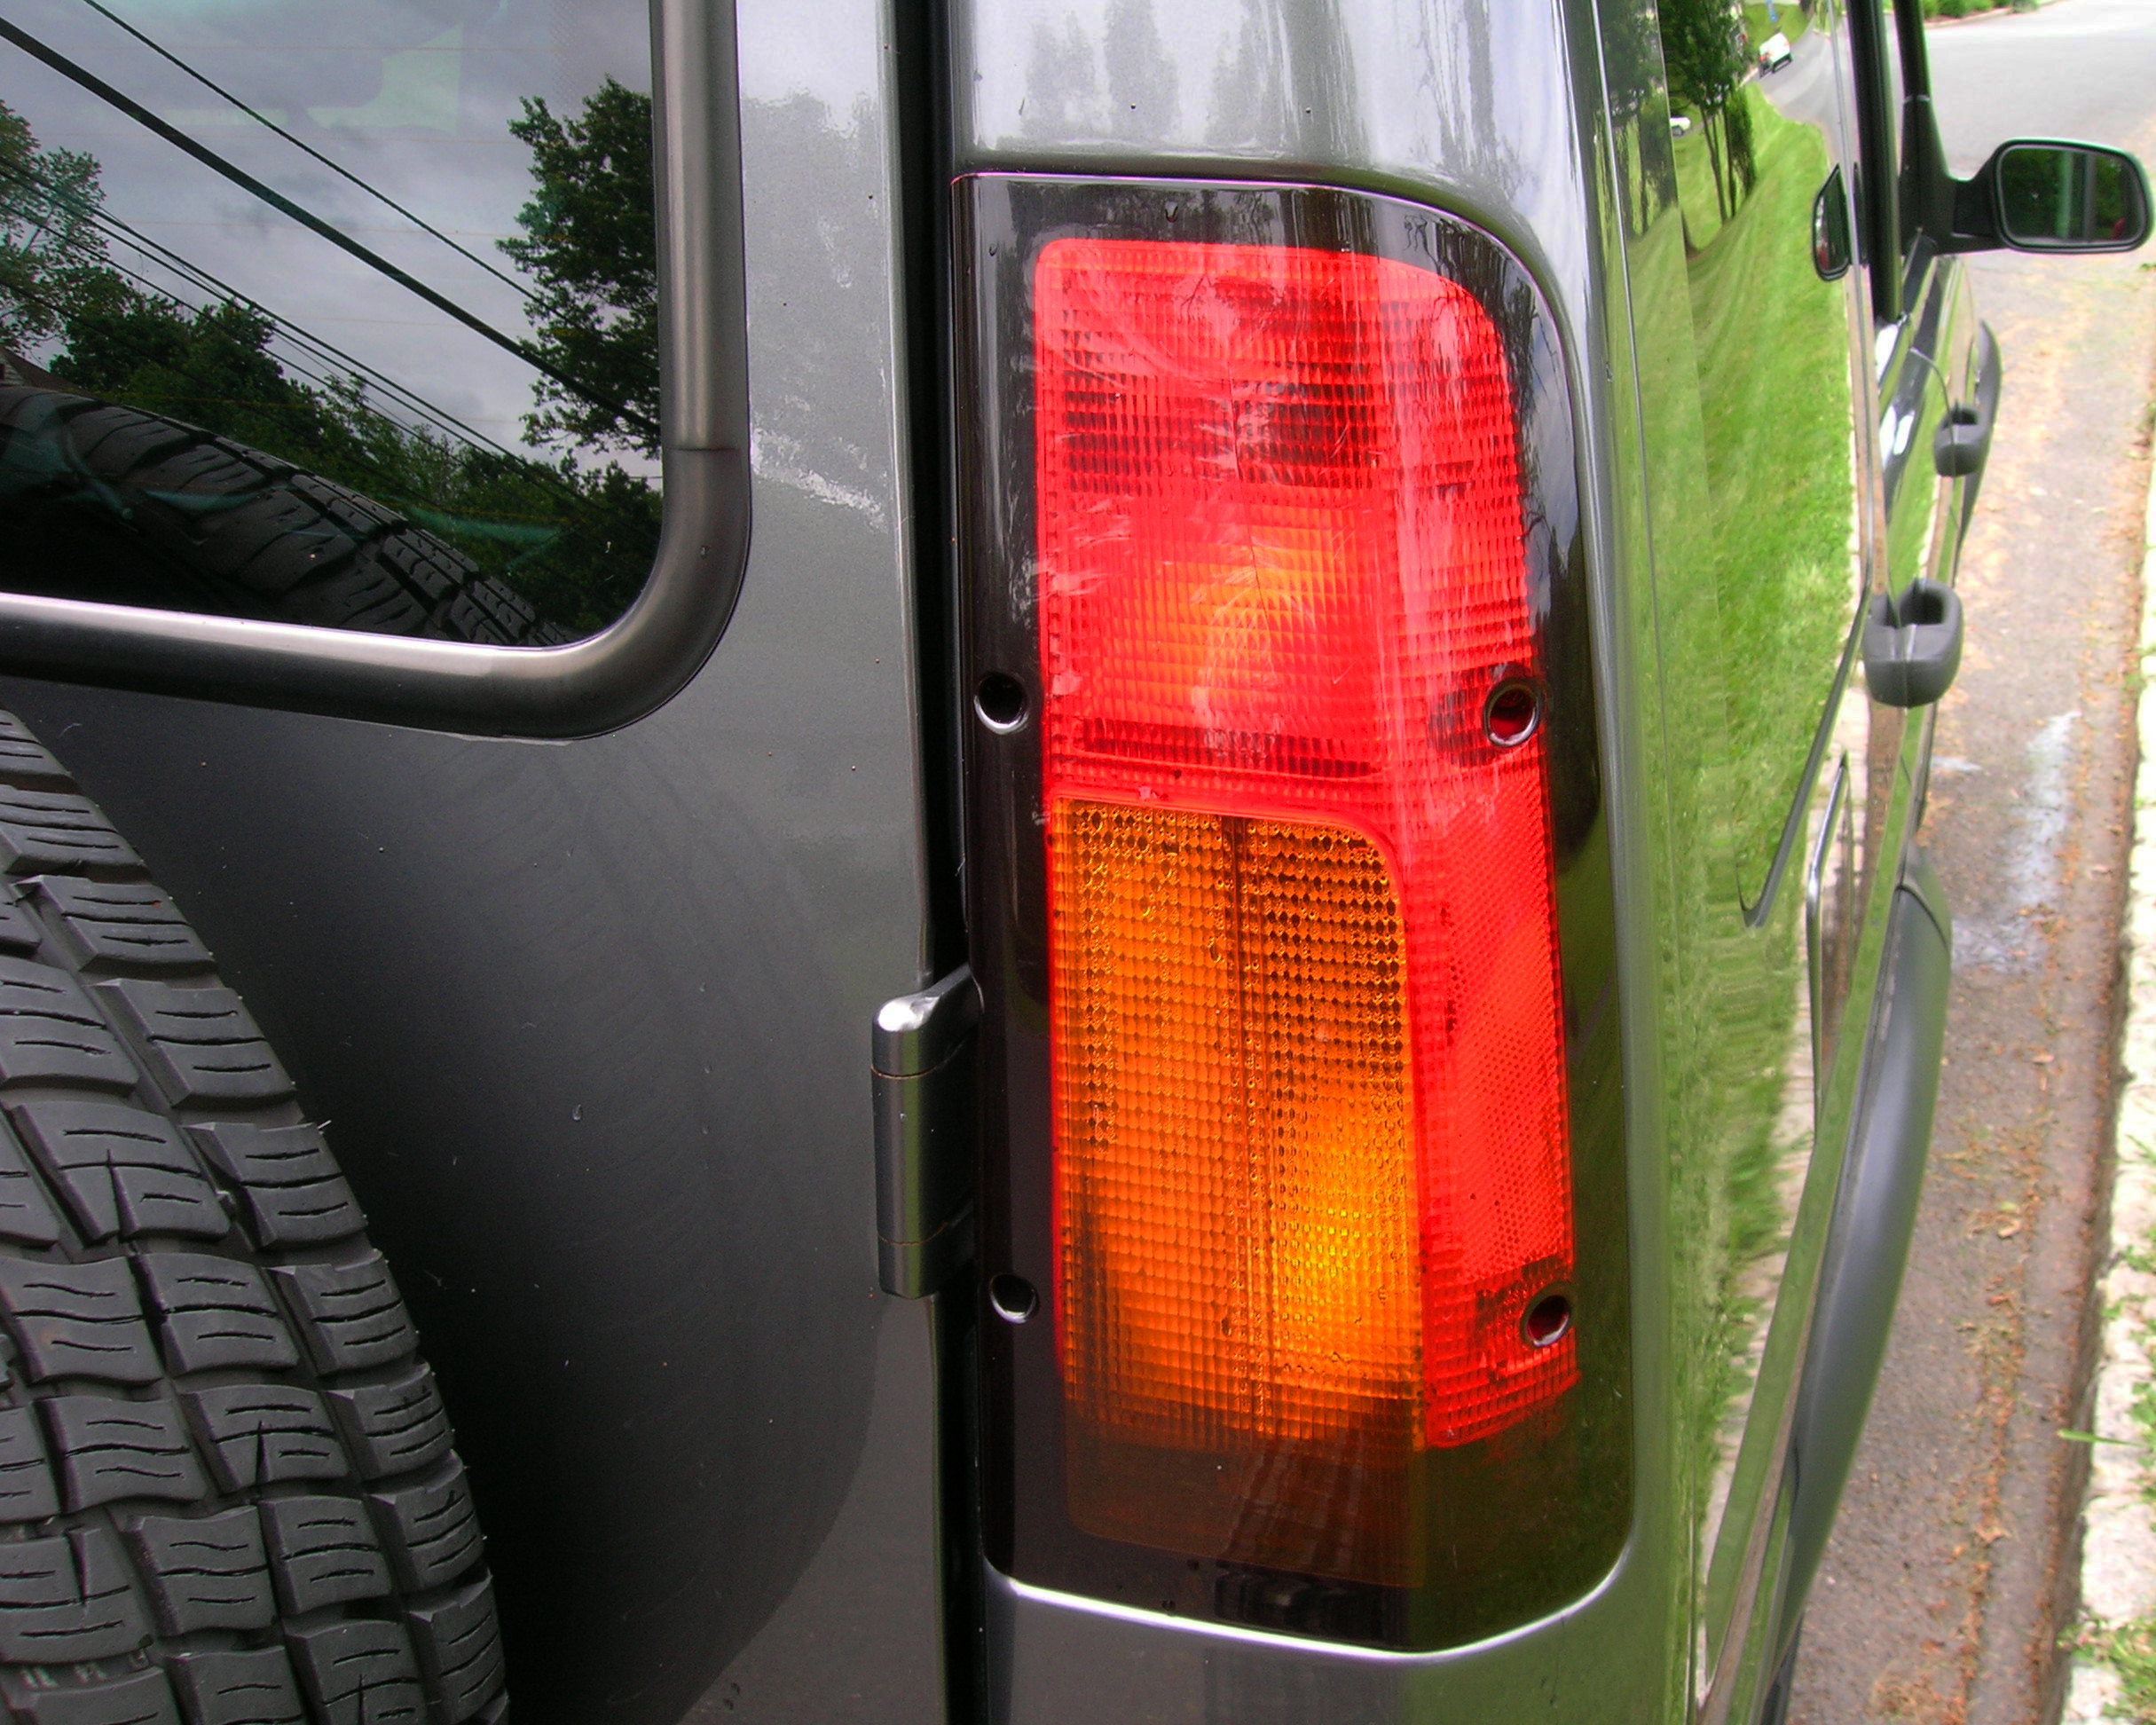 Land Rover Discovery 2 Brake Light On Car Rear Diagram Landrover Td5 Facelift 2003 Rh Xfb000421 Brand New Source Tail Design 2004 Discoverys Classic